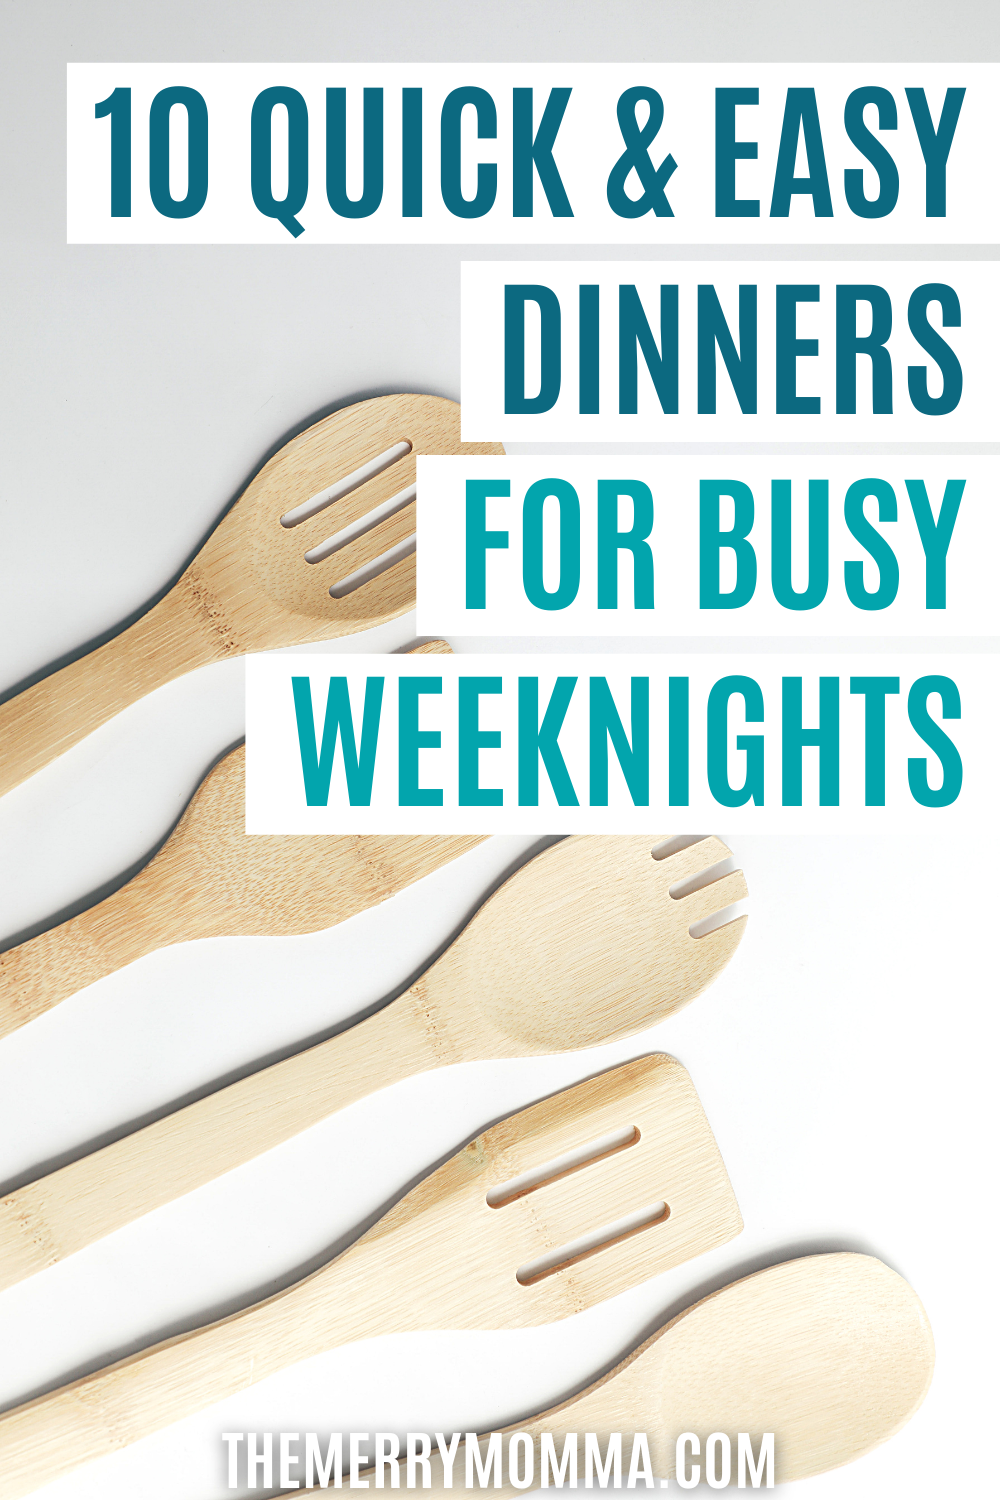 10 Quick & Easy Dinners for Busy Weeknights